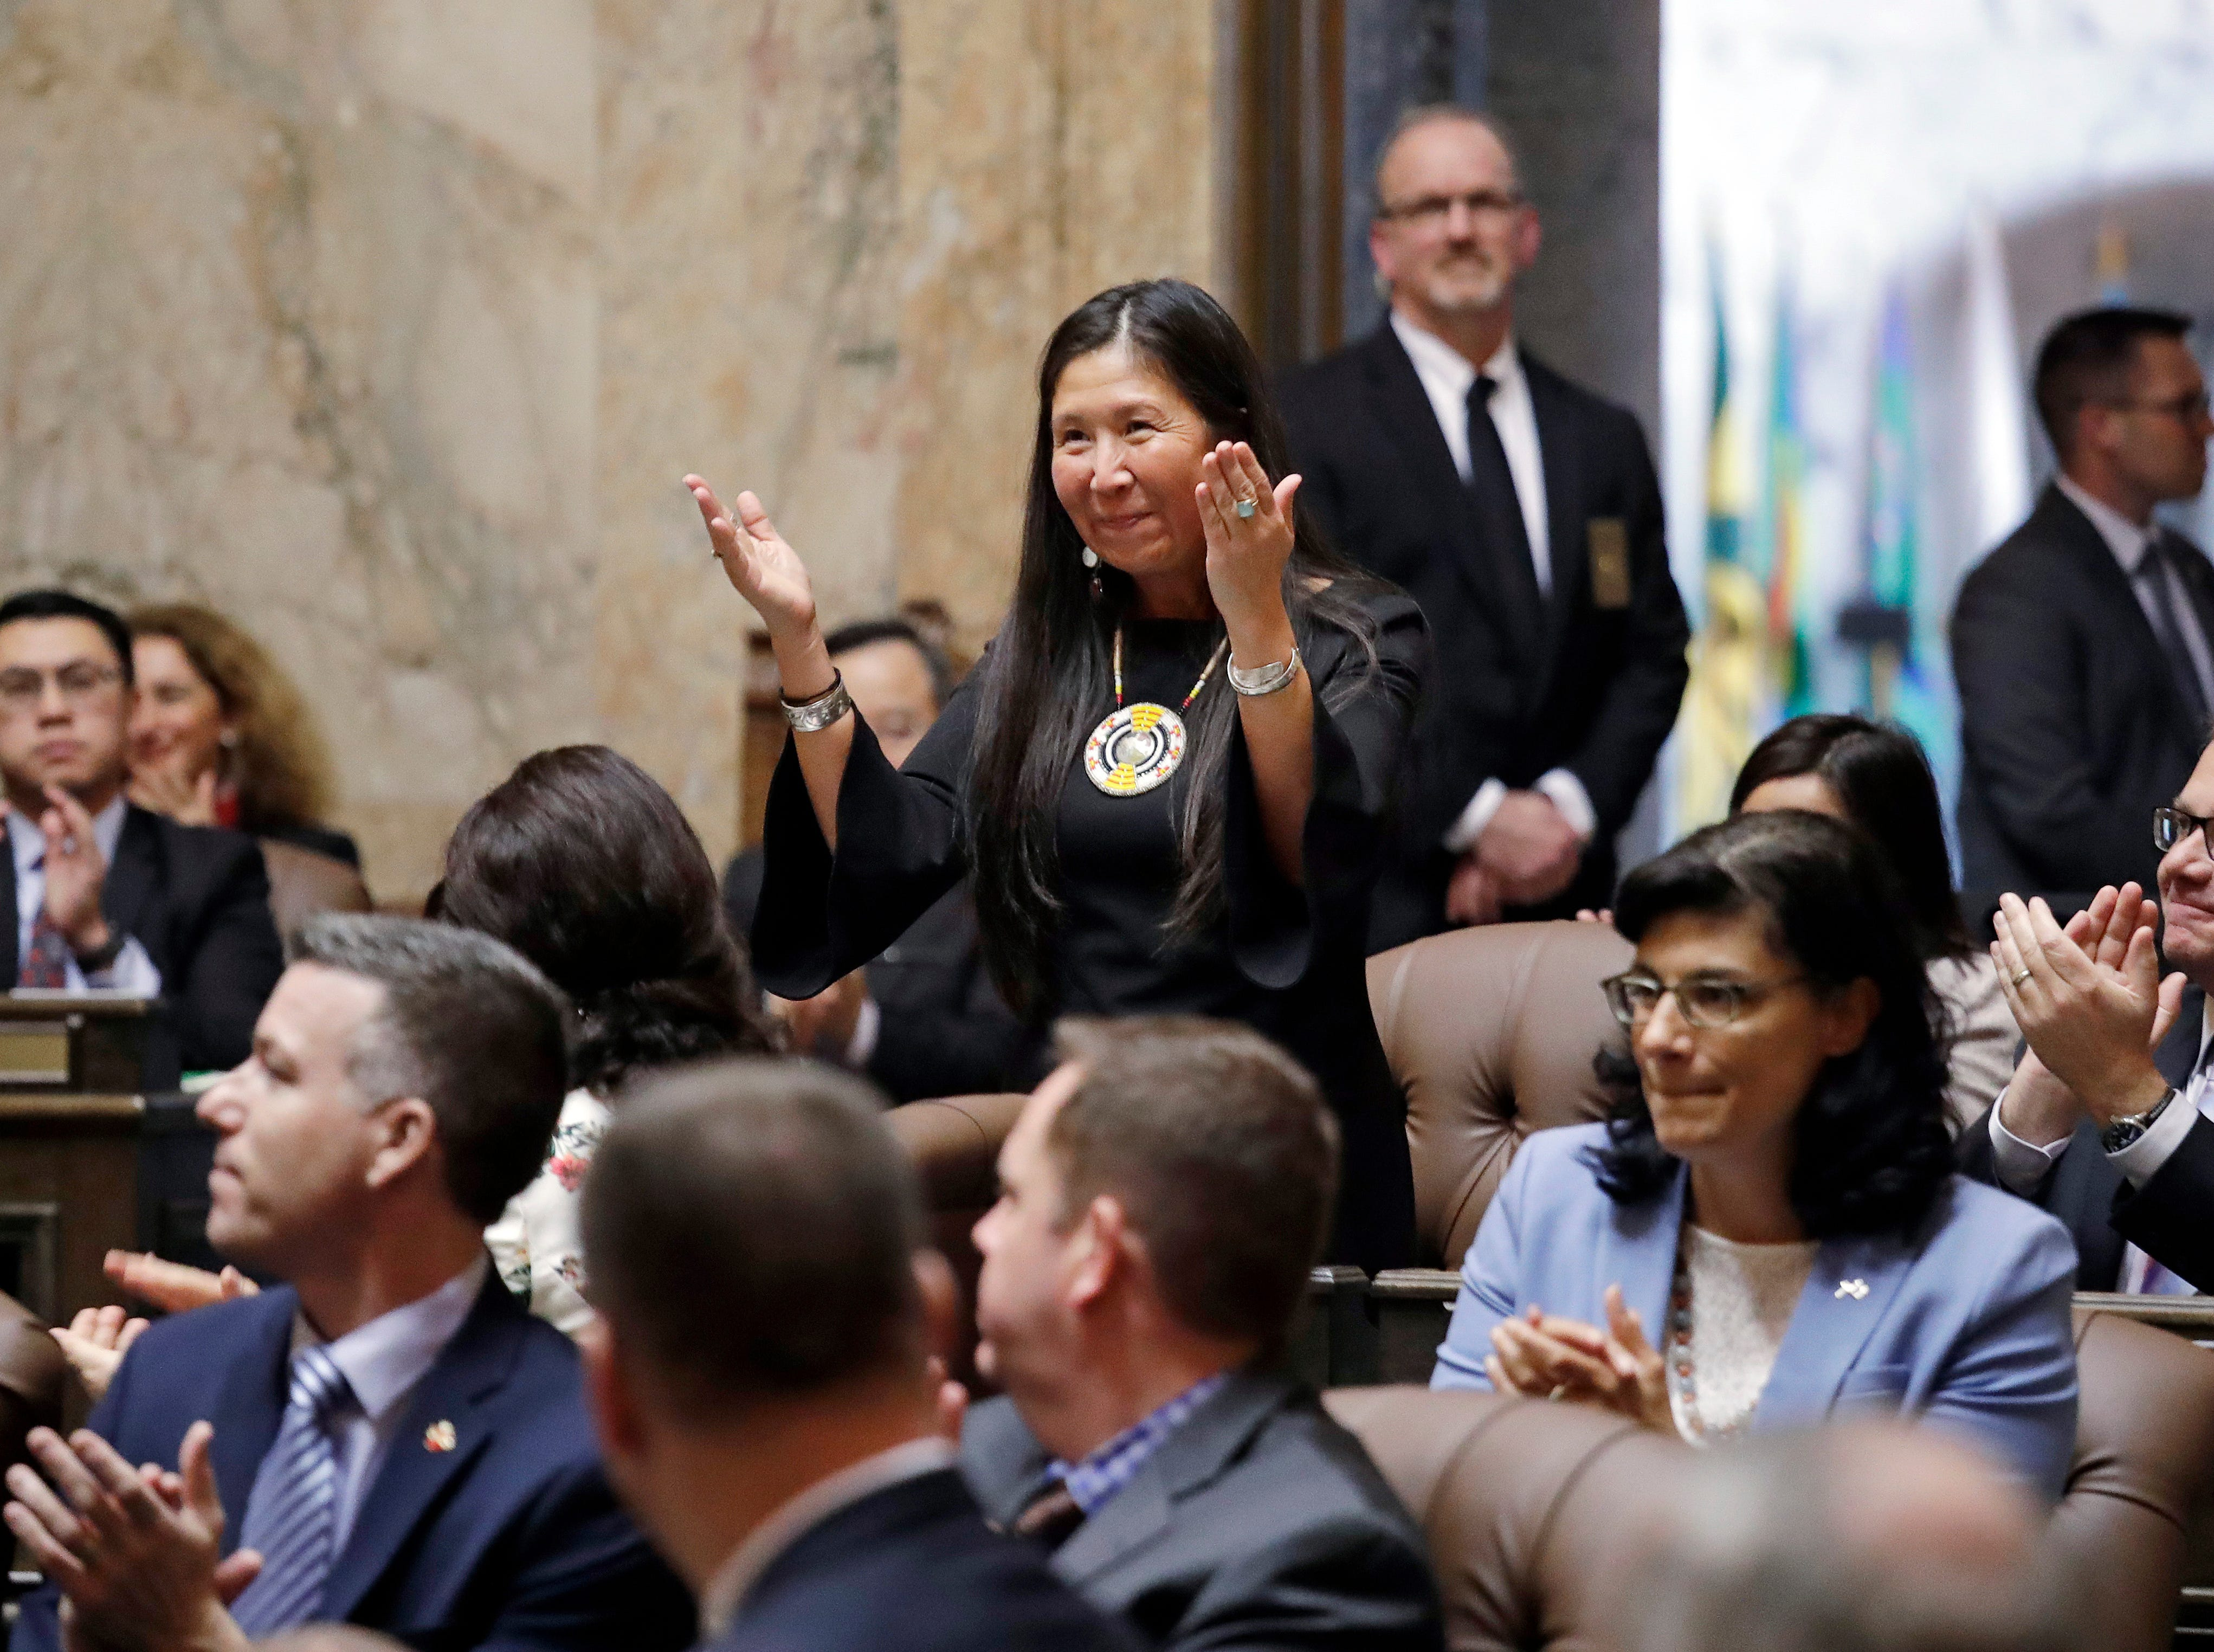 Rep. Debra Lekanoff, D-Bow, gives a traditional Native American greeting as she is introduced by Gov. Jay Inslee during his State of the State address Tuesday in Olympia.